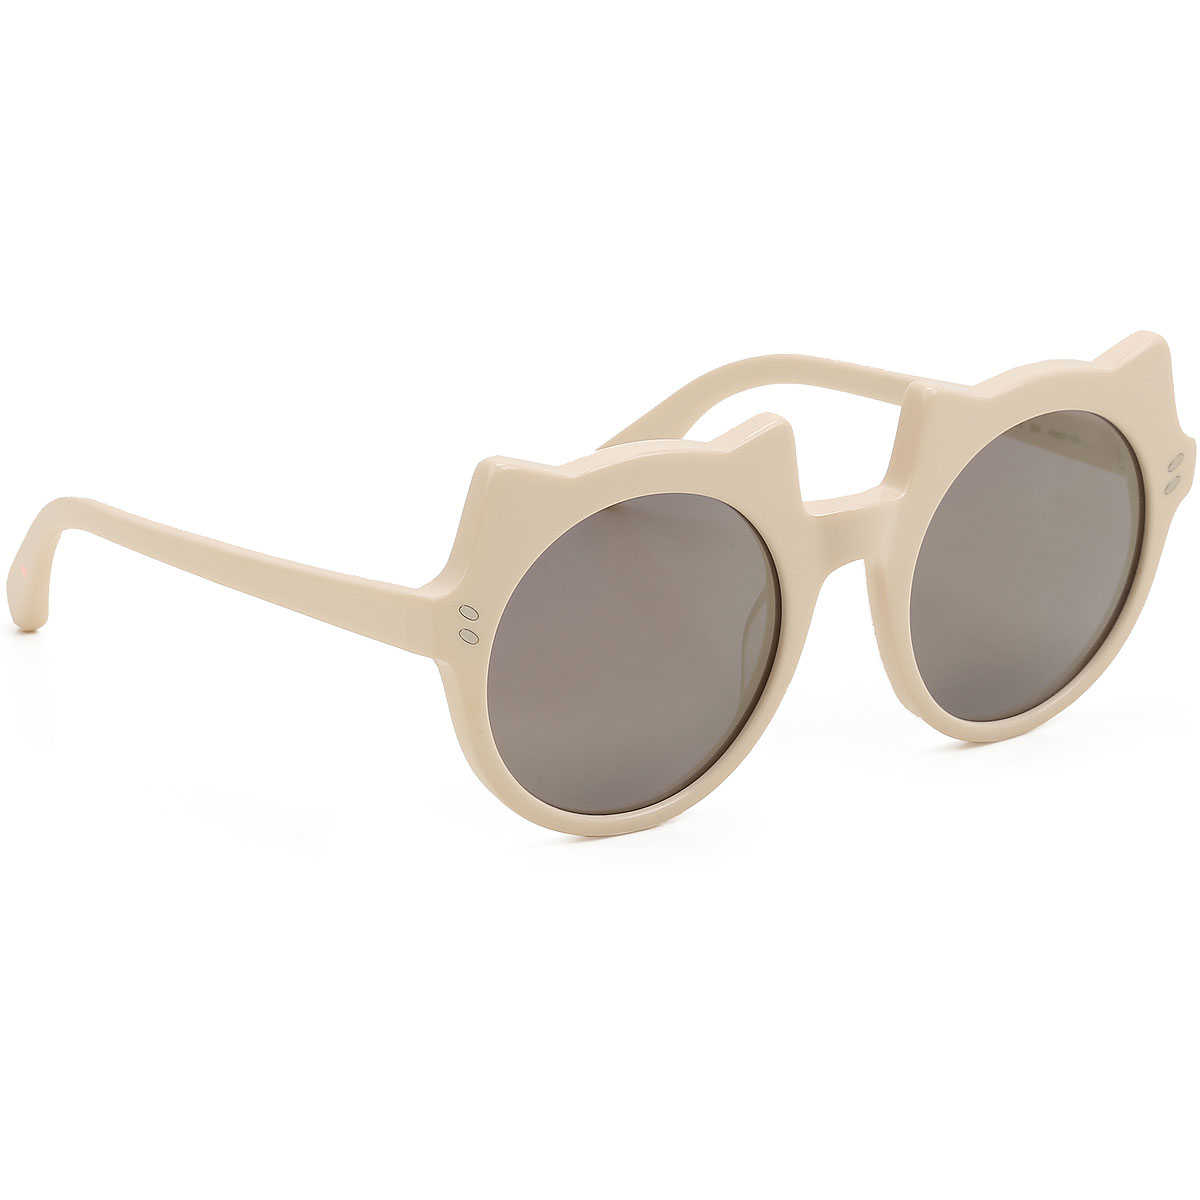 Stella McCartney Kids Sunglasses for Girls Ivory USA - GOOFASH